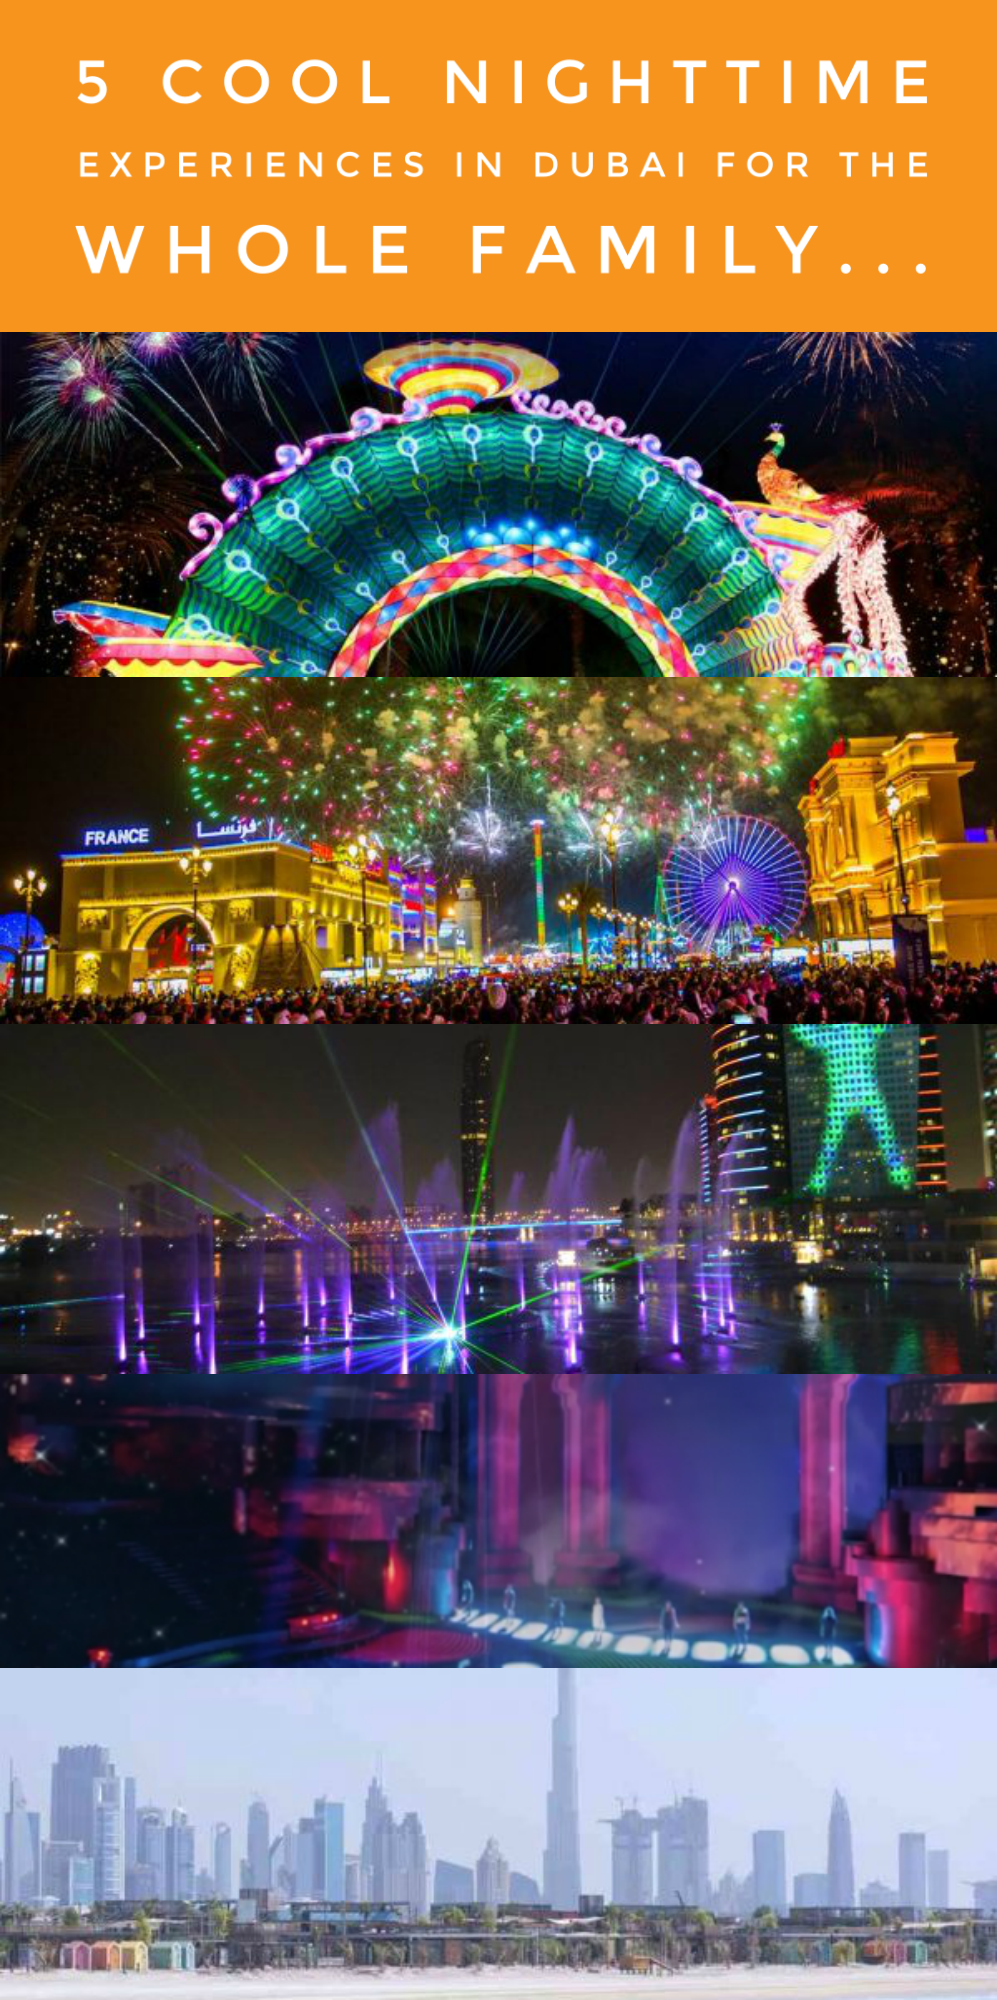 5 Cool Nighttime Experiences in Dubai For the Whole Family